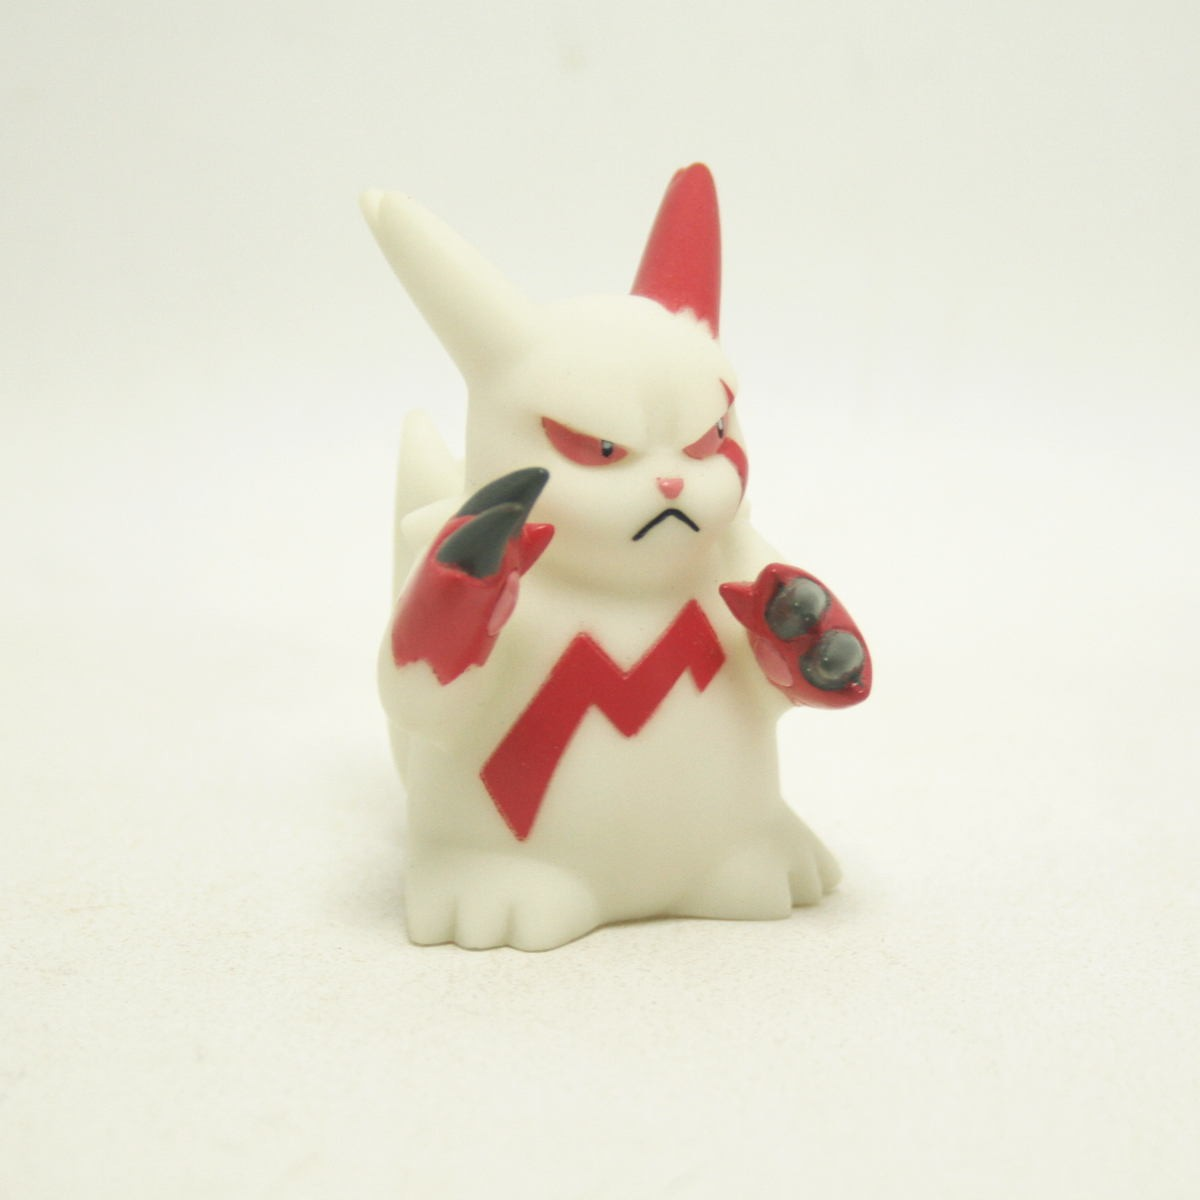 Pokemon Mini Figure Zangoose Importado do japão